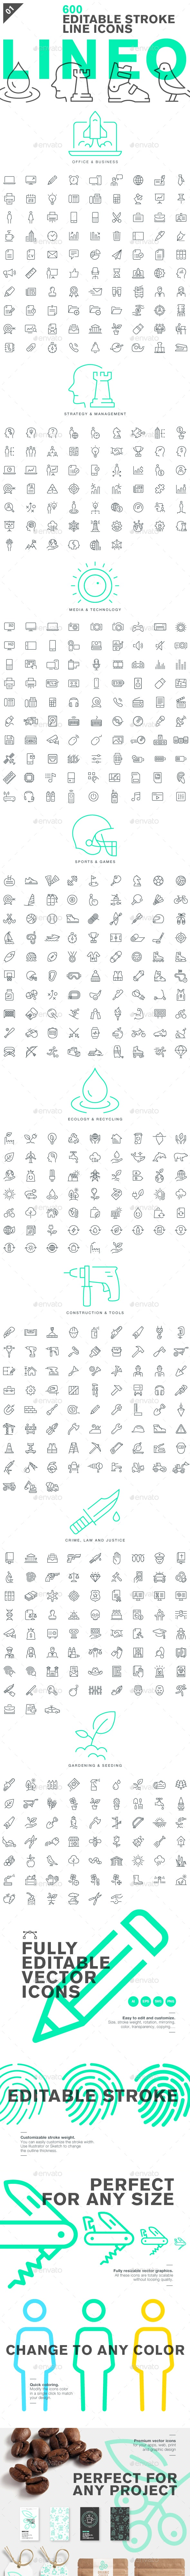 Lineo - Pack 1 - 600 Icons - Icons